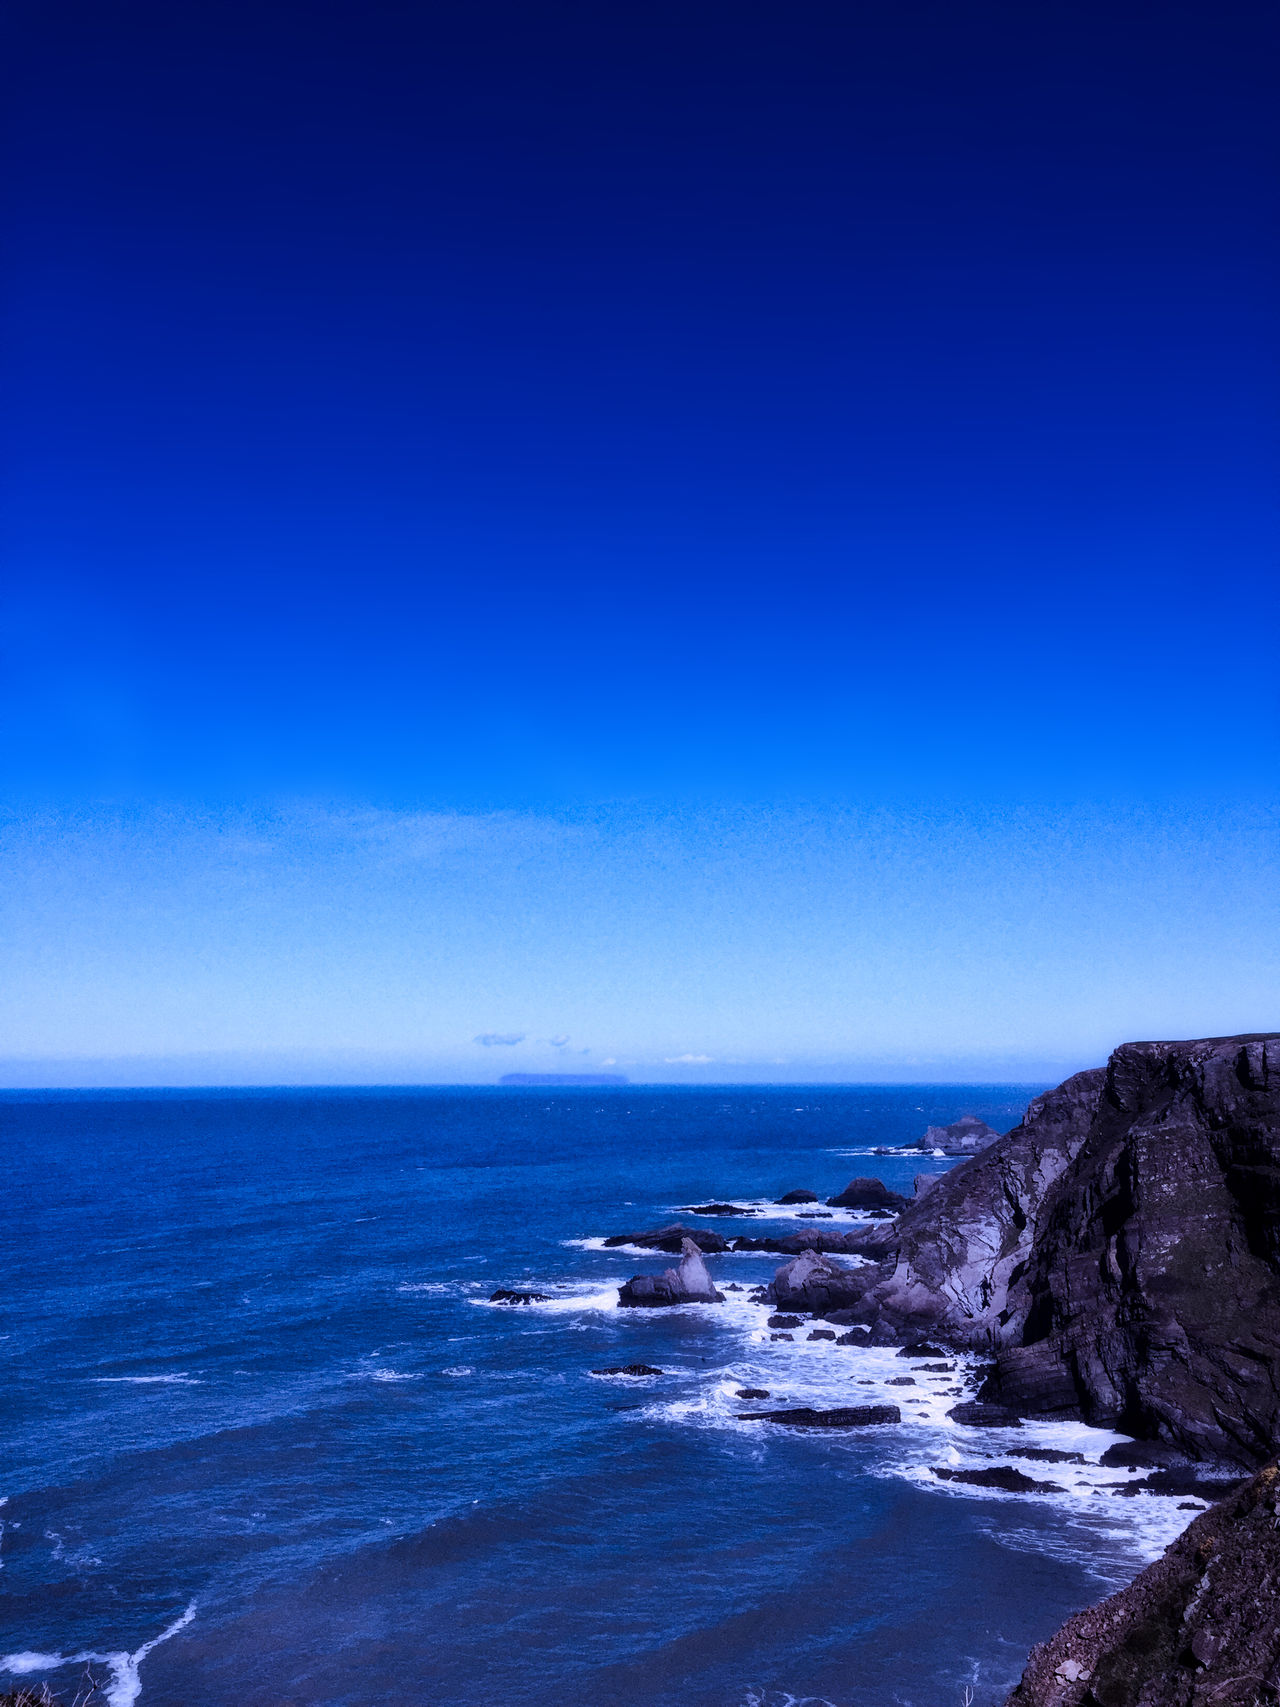 Astronomy Beach Beauty In Nature Blue Clear Sky Day Horizon Over Water Idyllic Isle Of Lundy Landscape Nature No People Outdoors Scenics Sea Sky Tranquil Scene Tranquility Water